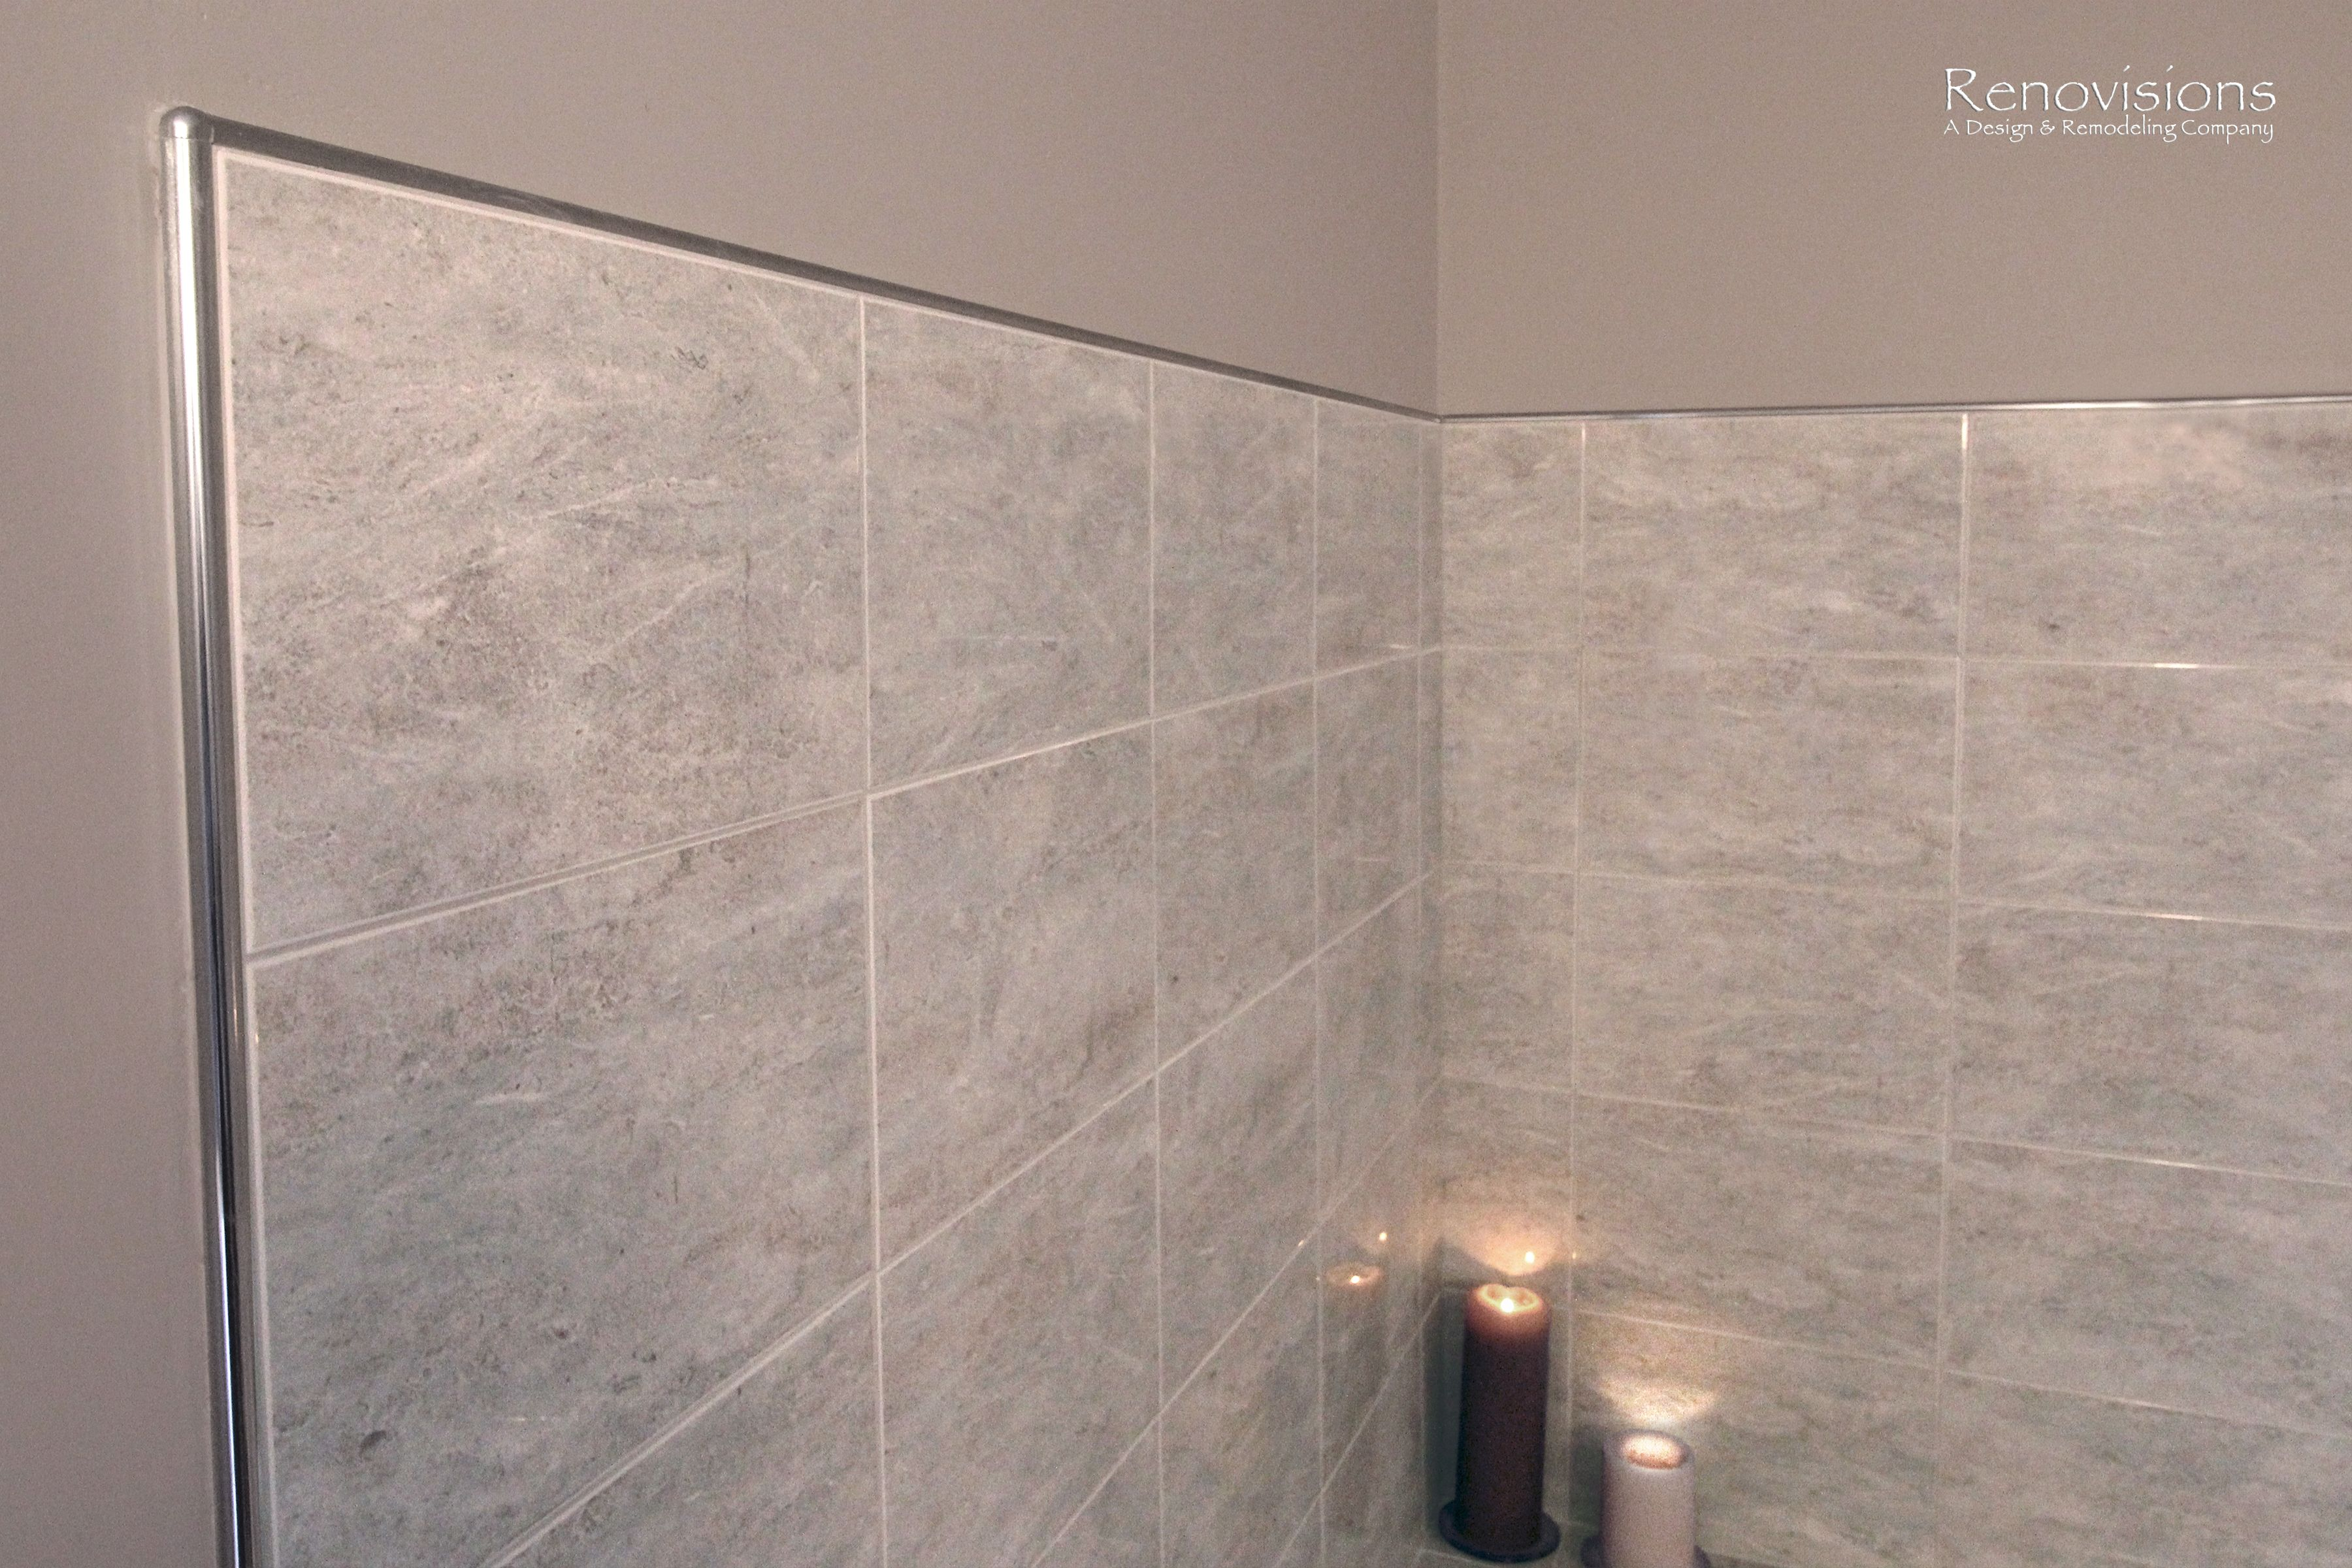 Bathroom remodel by Renovisions. Contemporary style